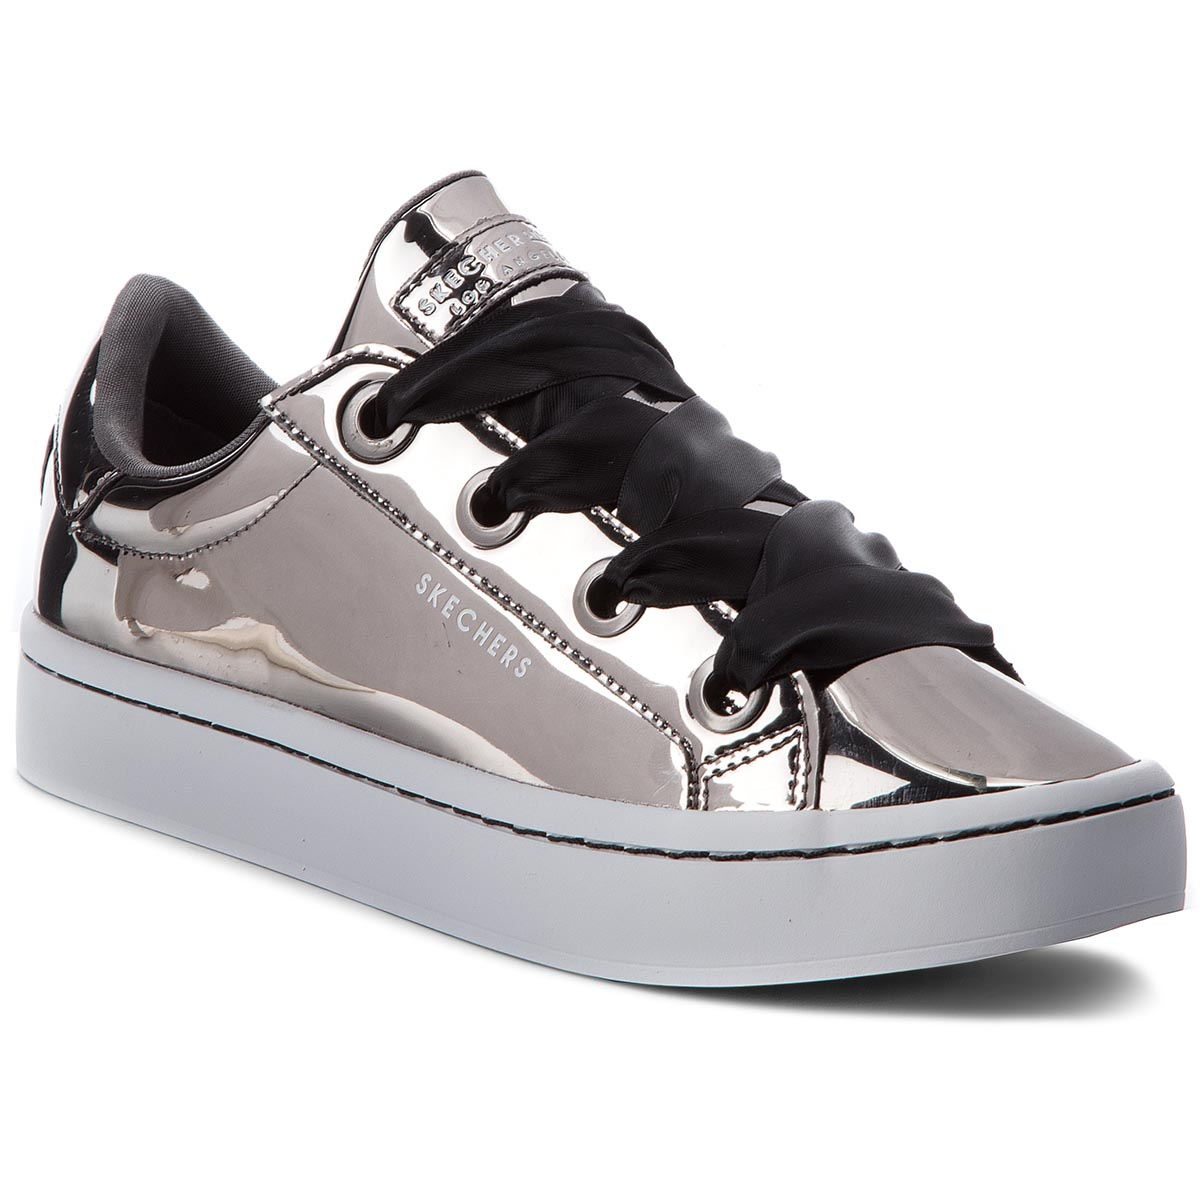 Sneakersy SKECHERS - Liquid Bling 958/PEW Pewter